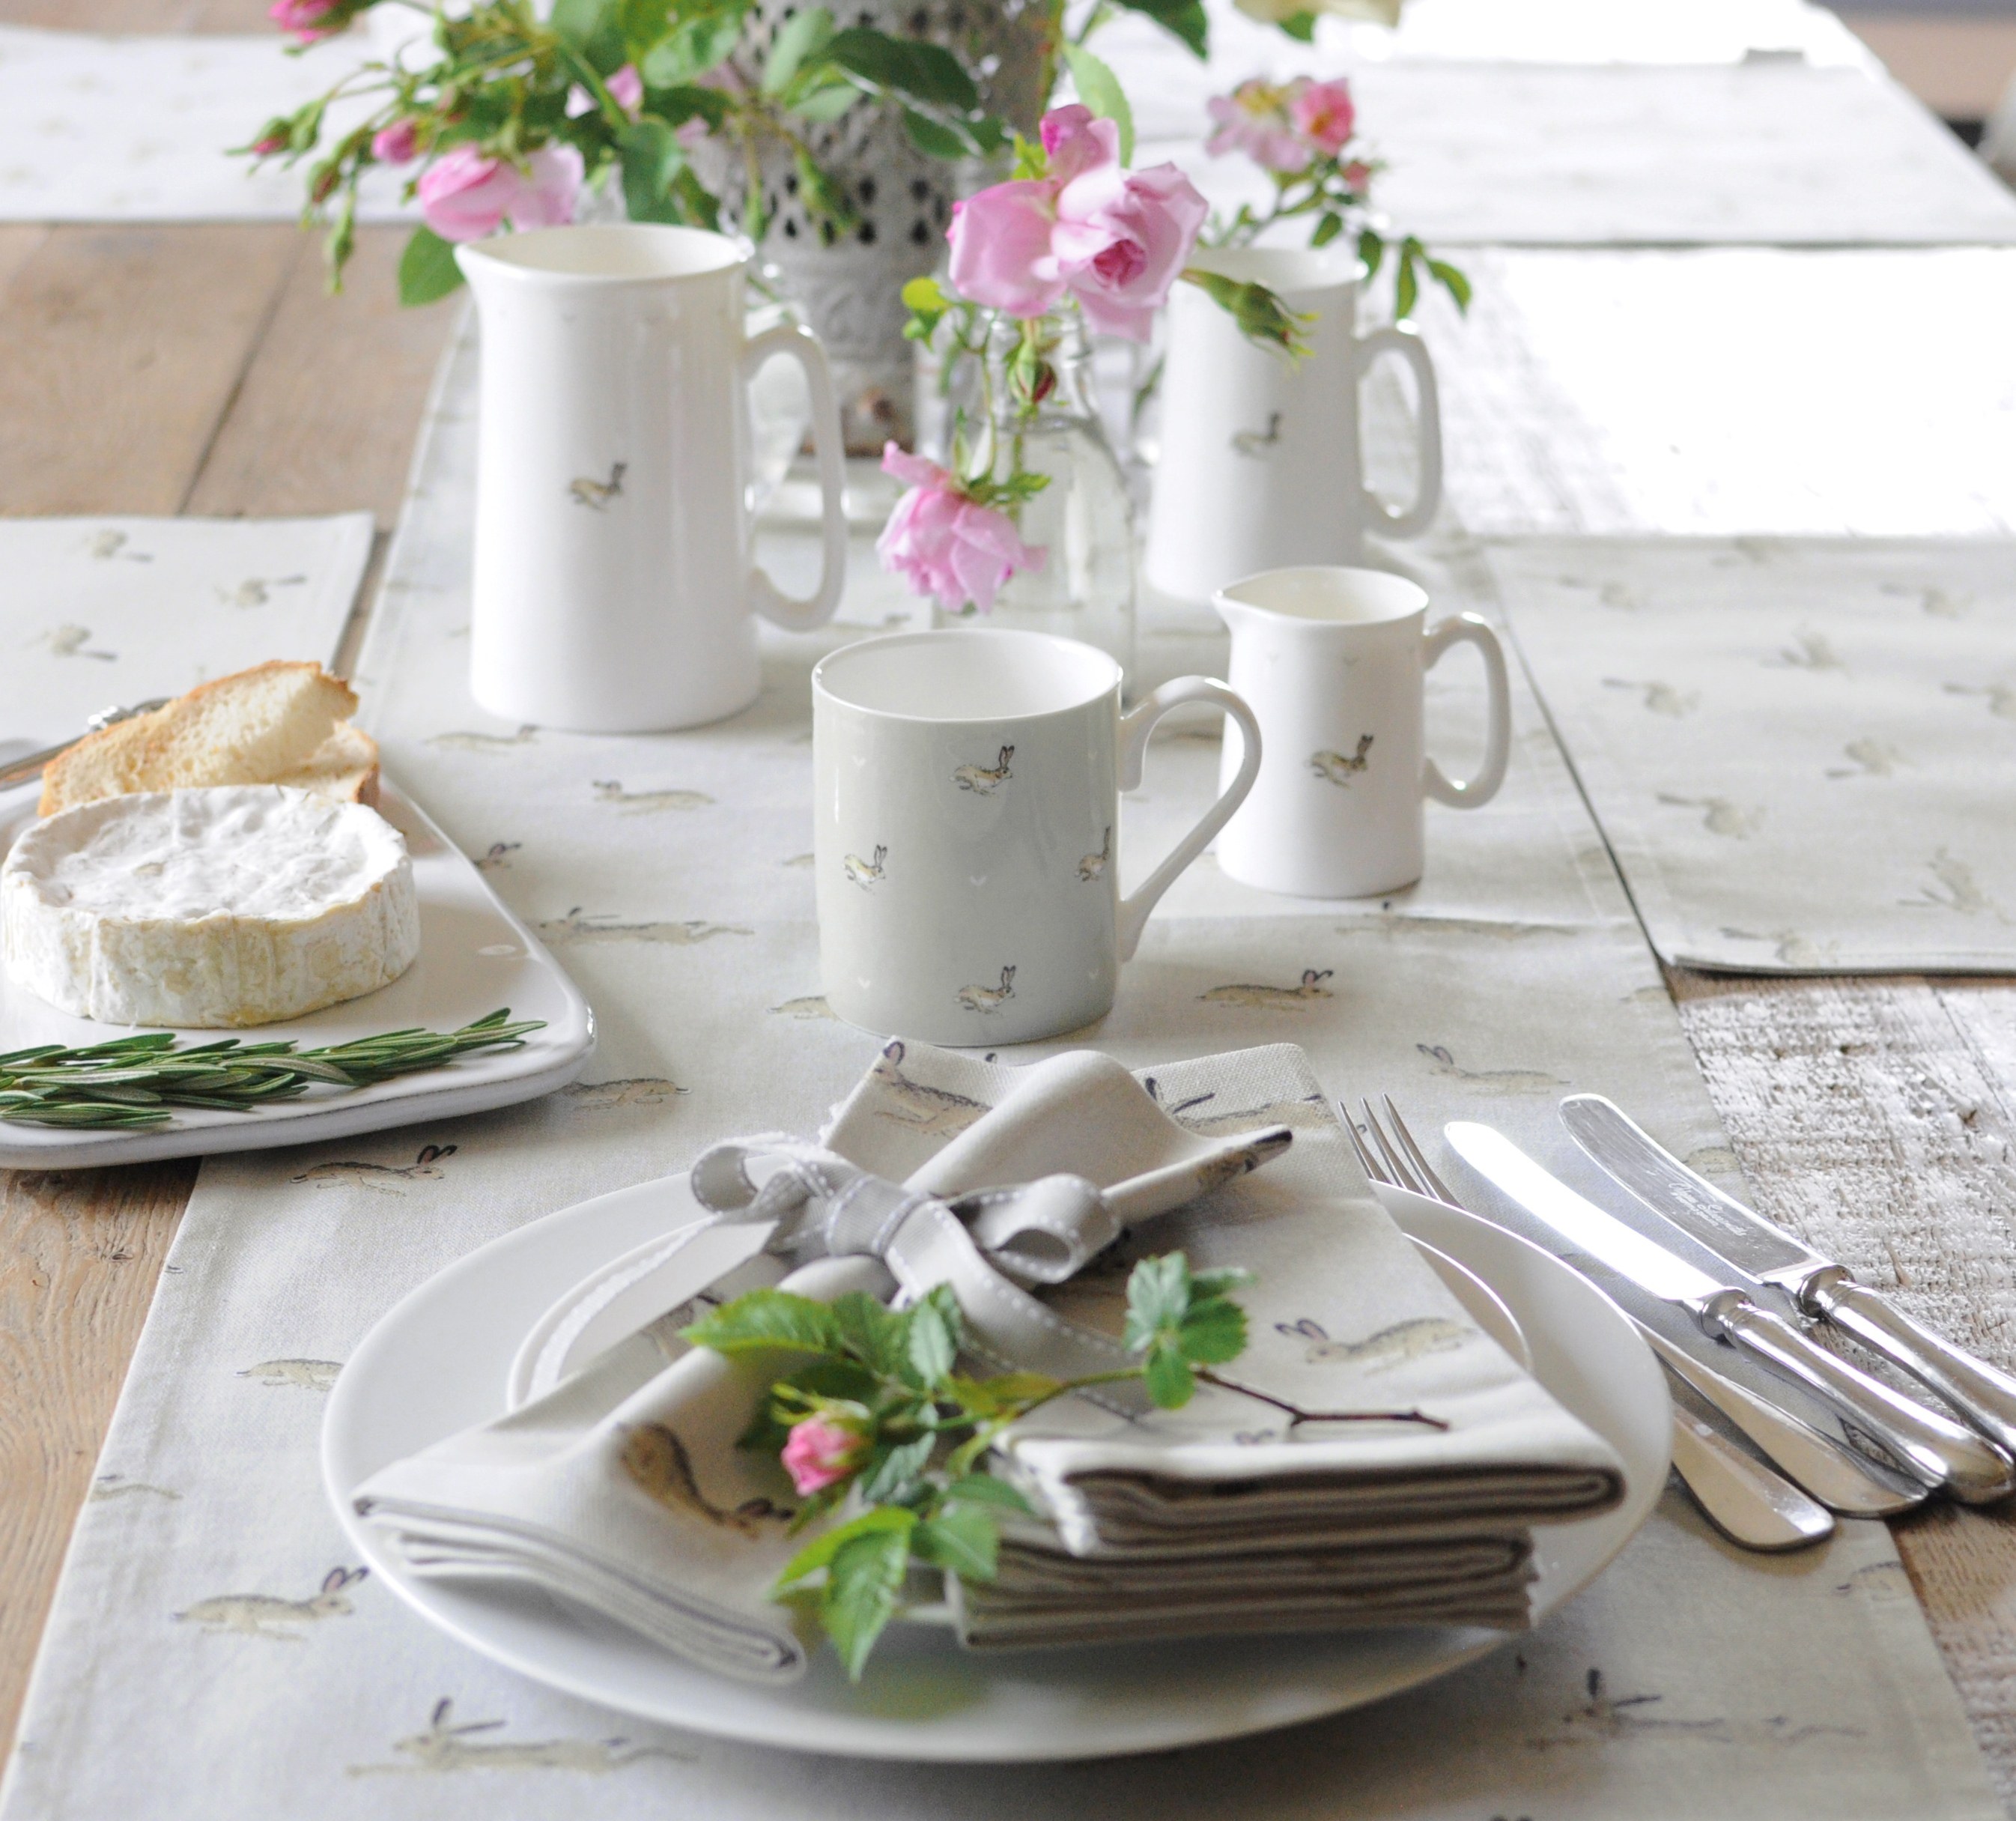 Sophie Allport, Hare Teacup and Saucer